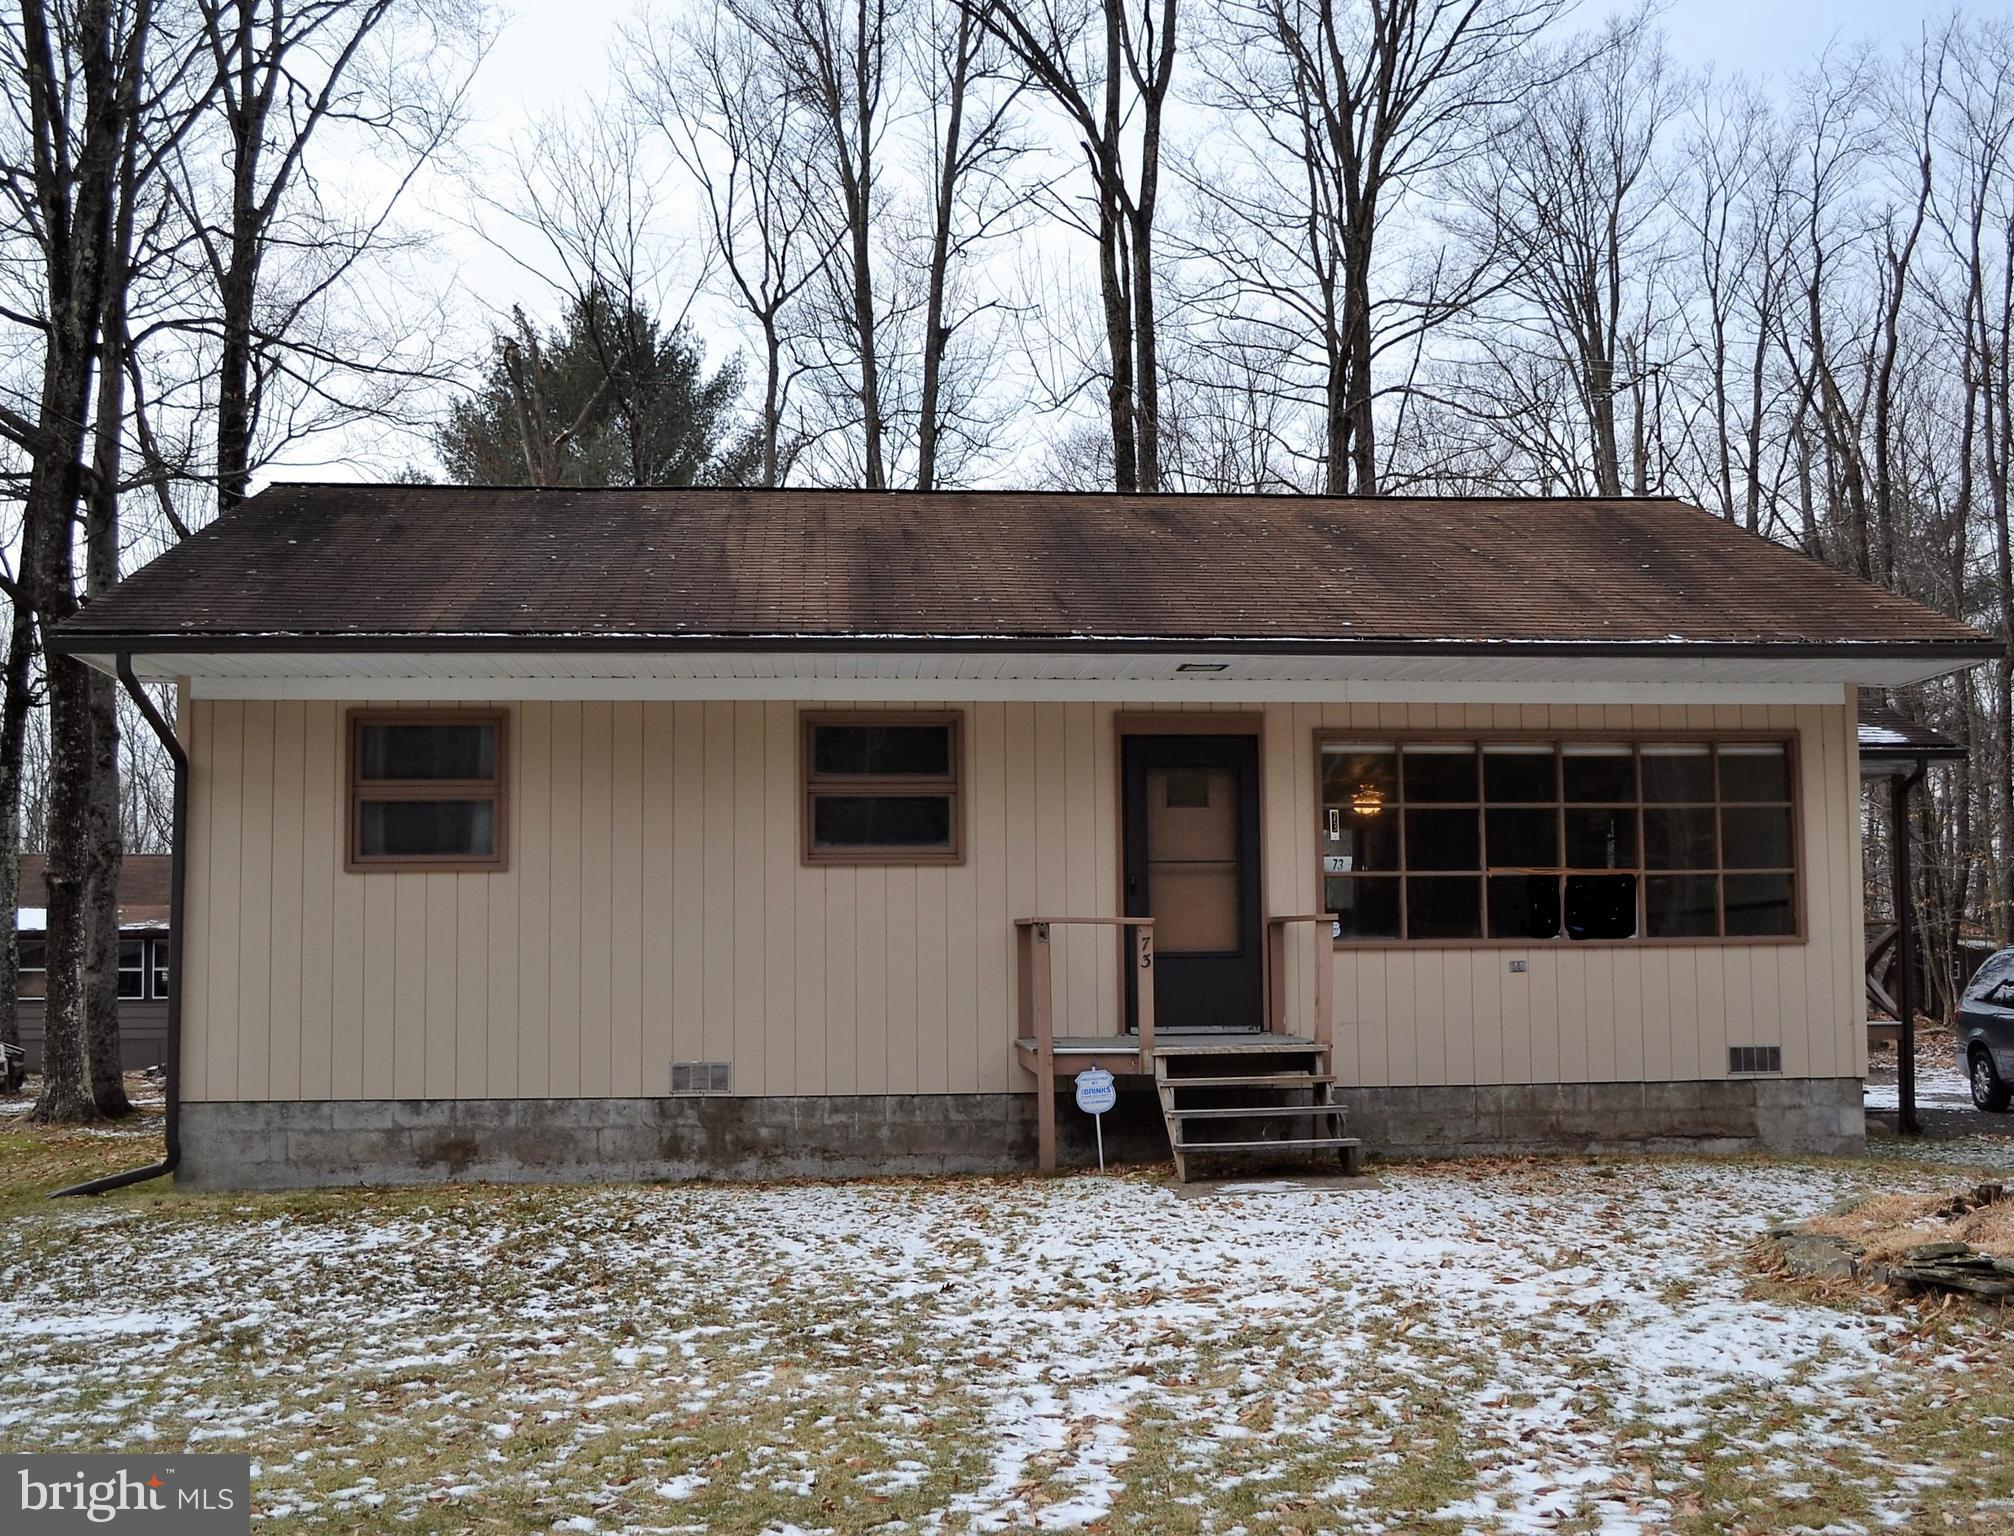 73 HONEY BEAR ROAD, LAKE ARIEL, PA 18436